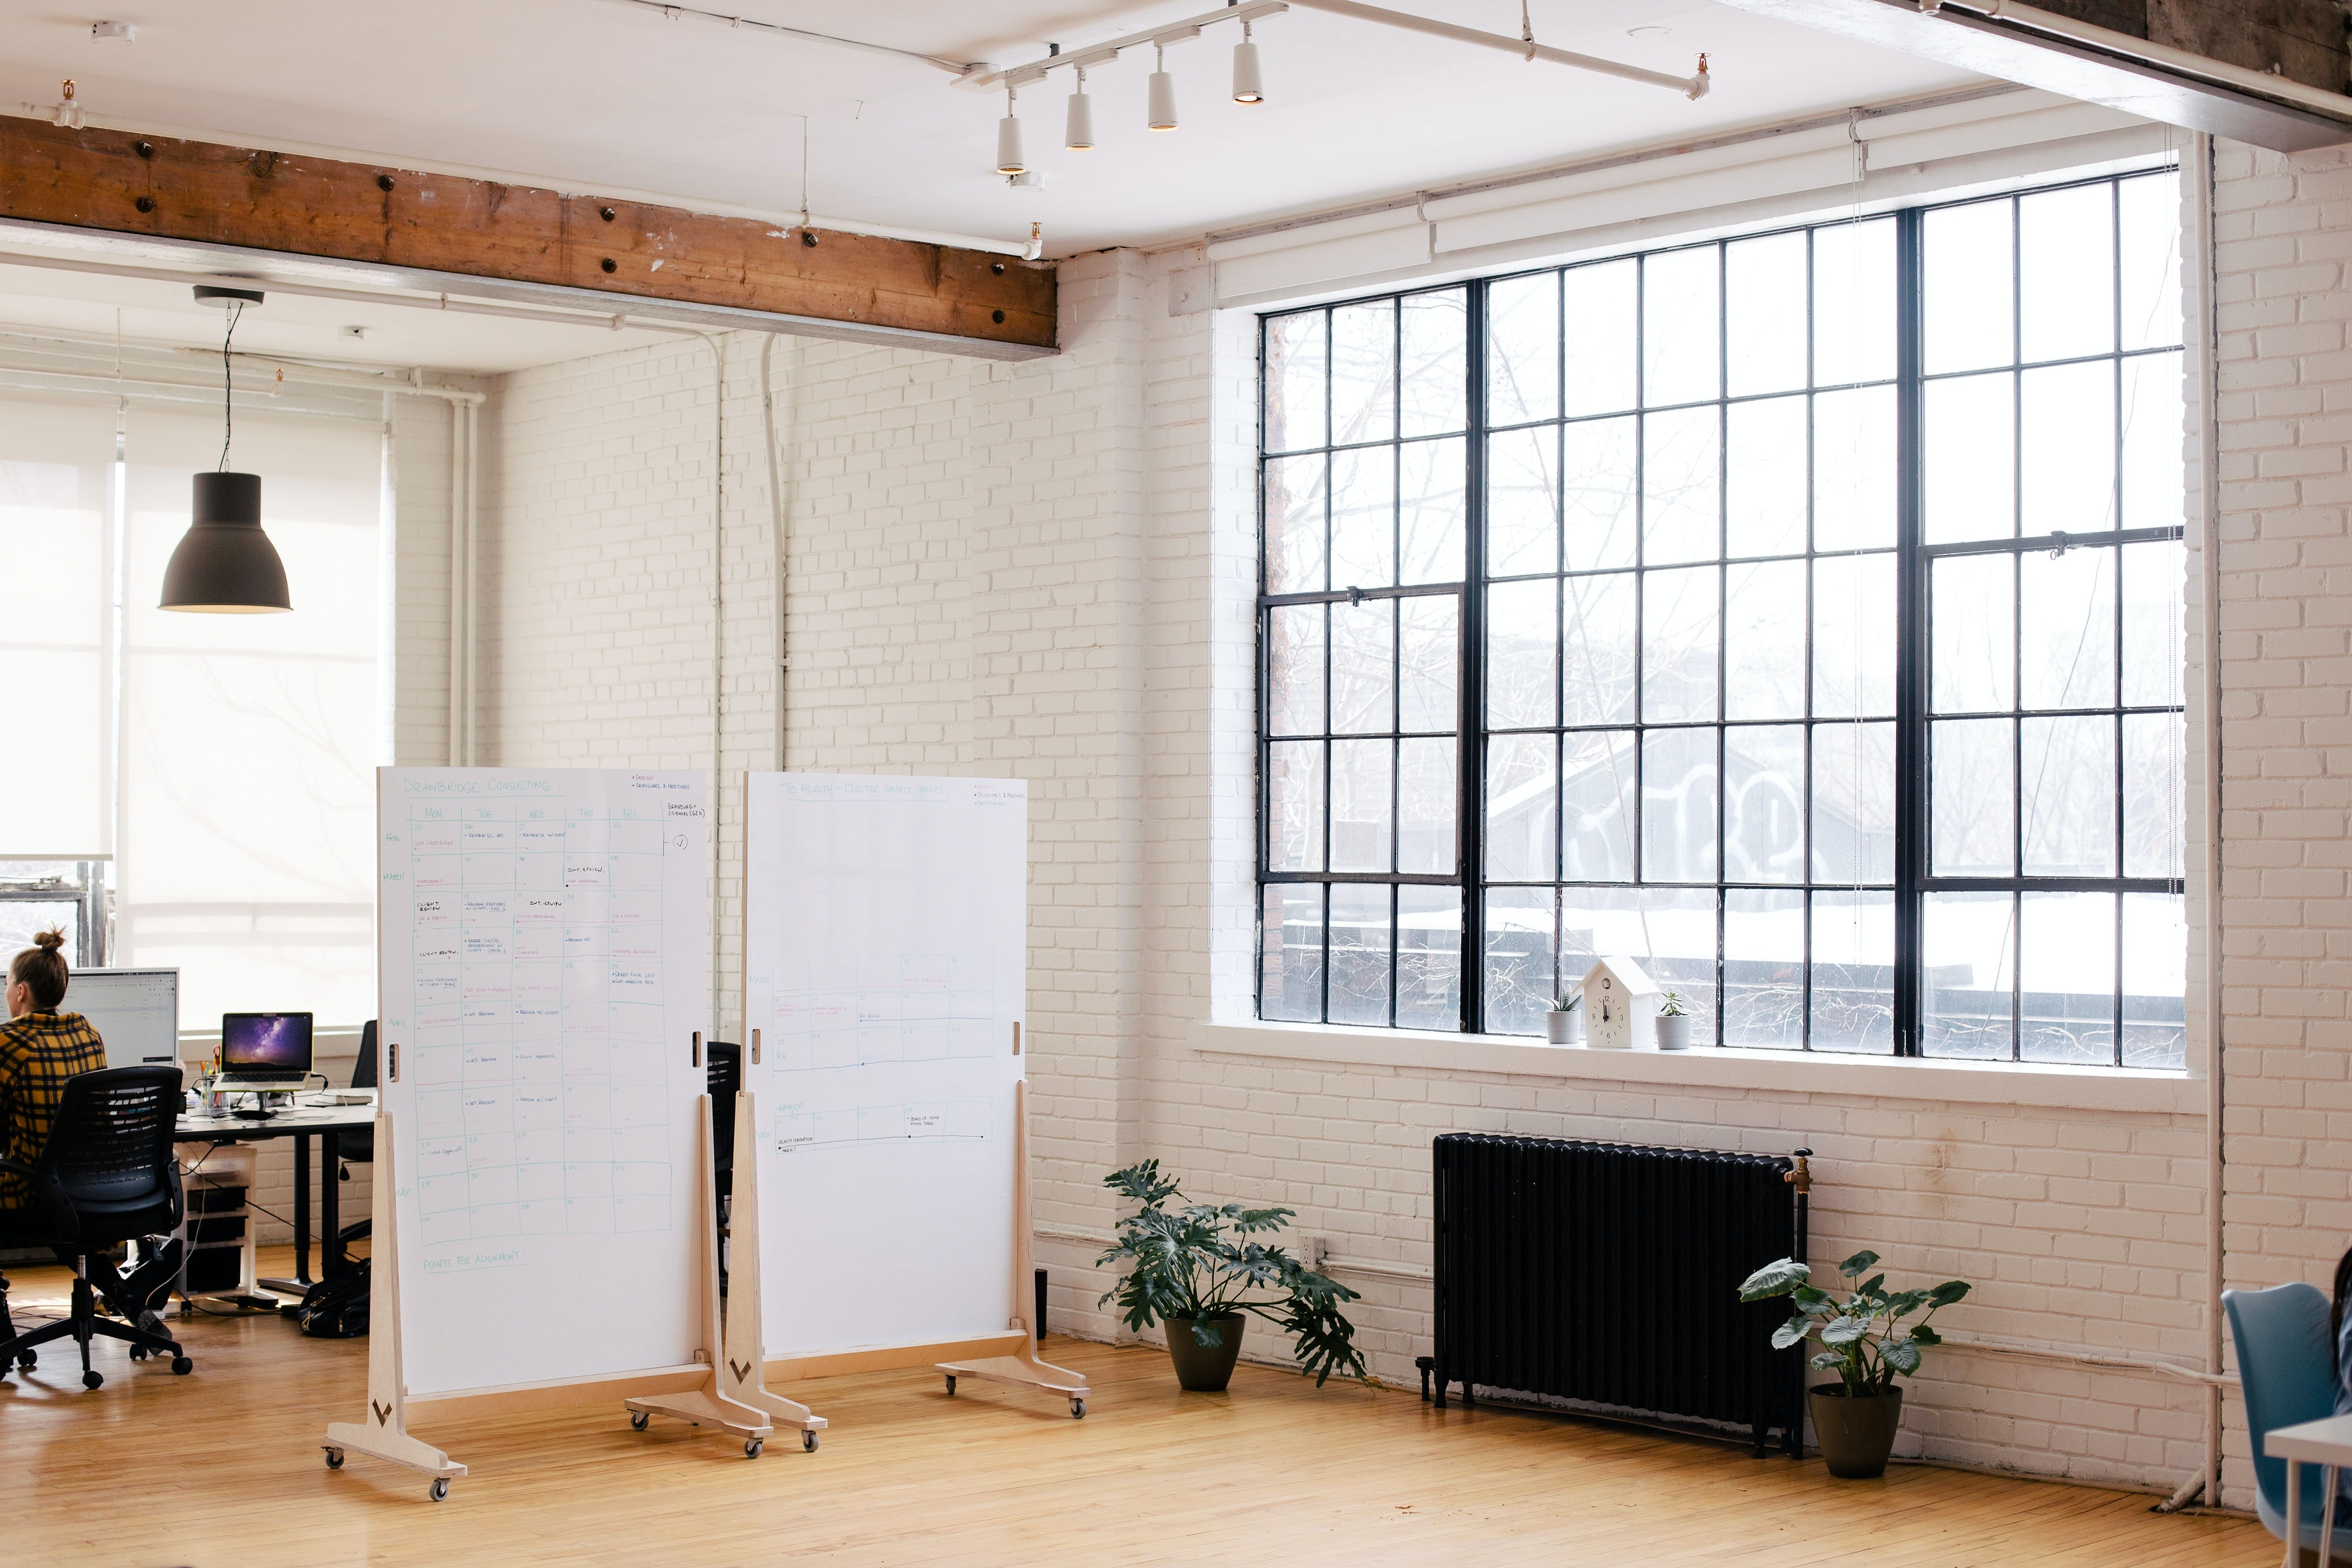 Well lit room with white boards and windows